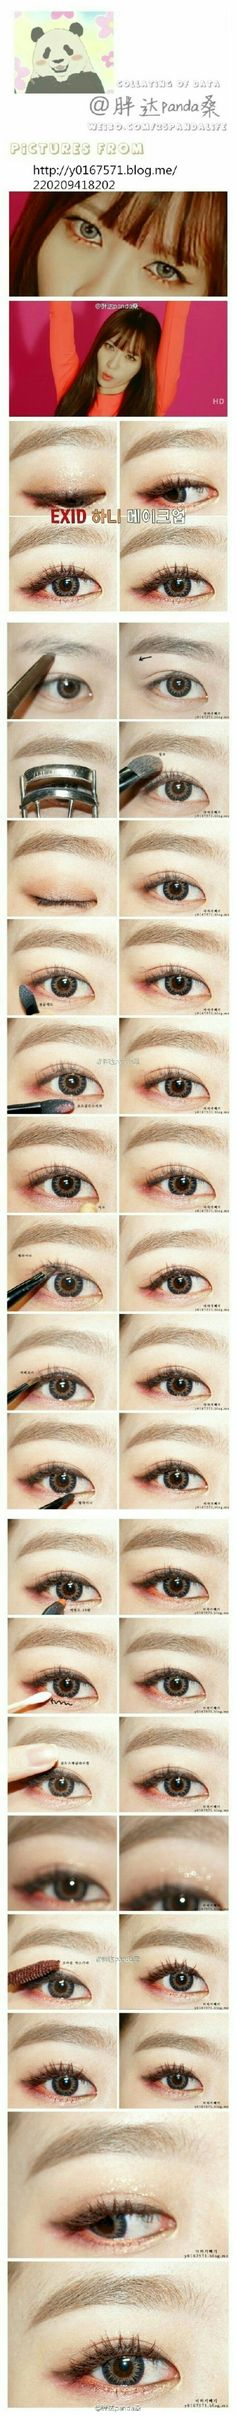 #Makeup #Hani #EXID #Up&Down #Korean #K-pop